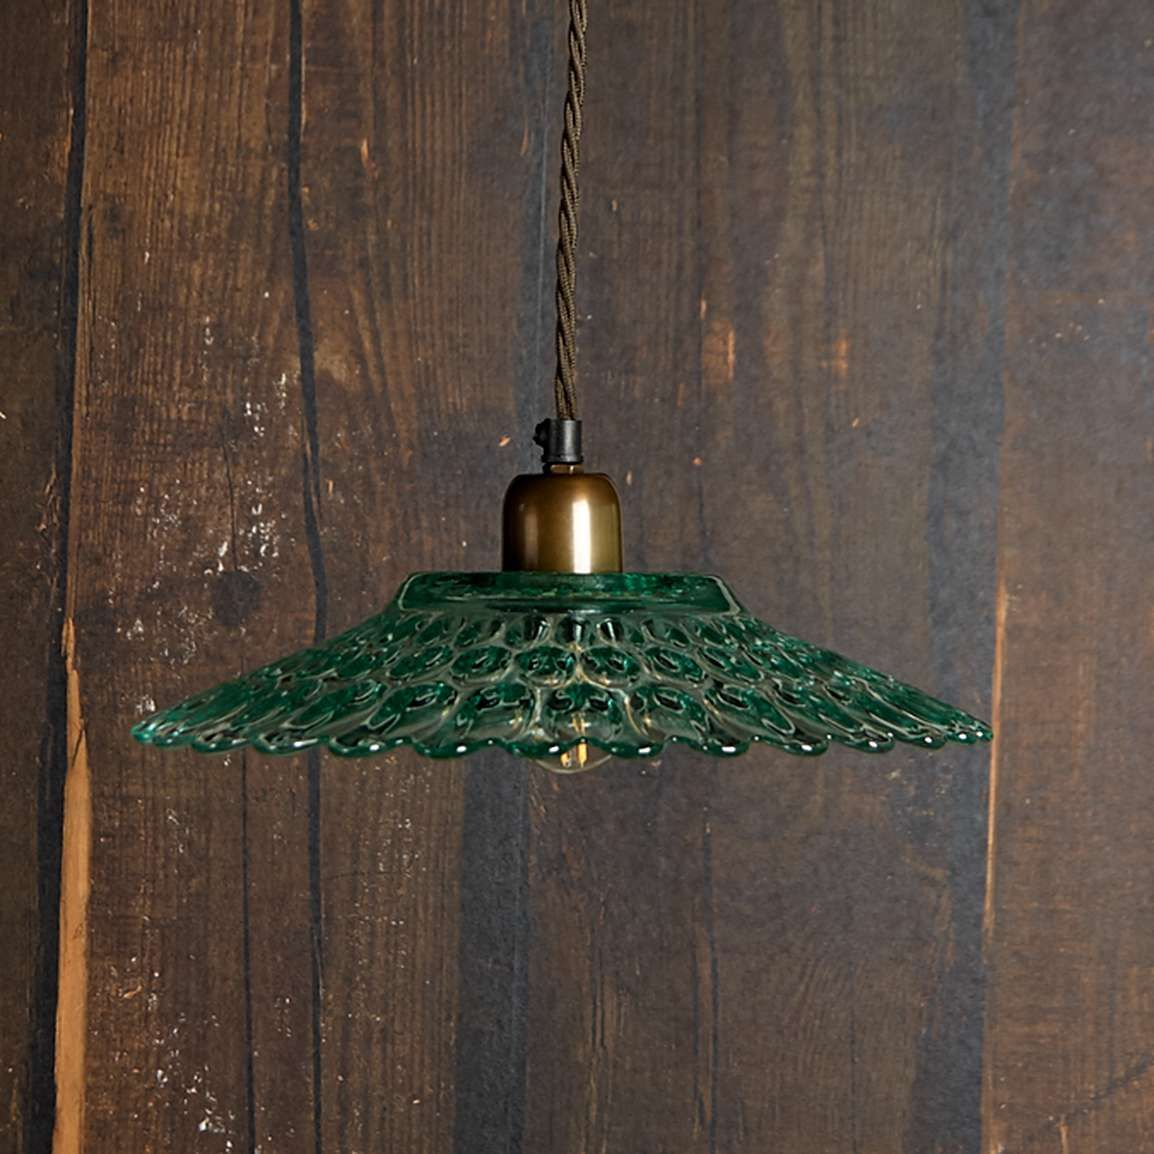 Eider Pendant Light In Recycled Green Glass In 2020 Green Pendant Light Glass Pendant Light Pendant Light